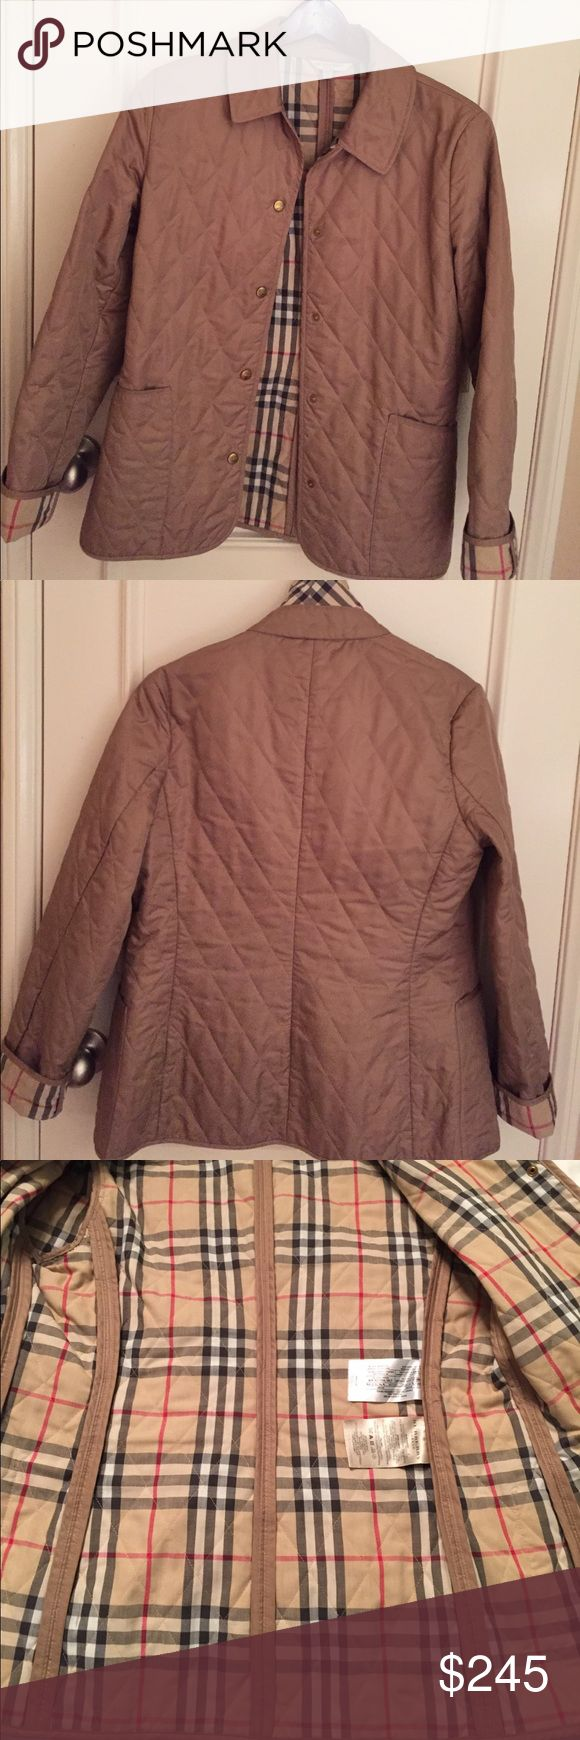 Authentic Burberry classic quilted jacket Timeless classic Burberry jacket. Gently loved. Very good condition except buttons. Tarnished but not significant. No Bundle or trade on this item, please! Burberry Jackets & Coats